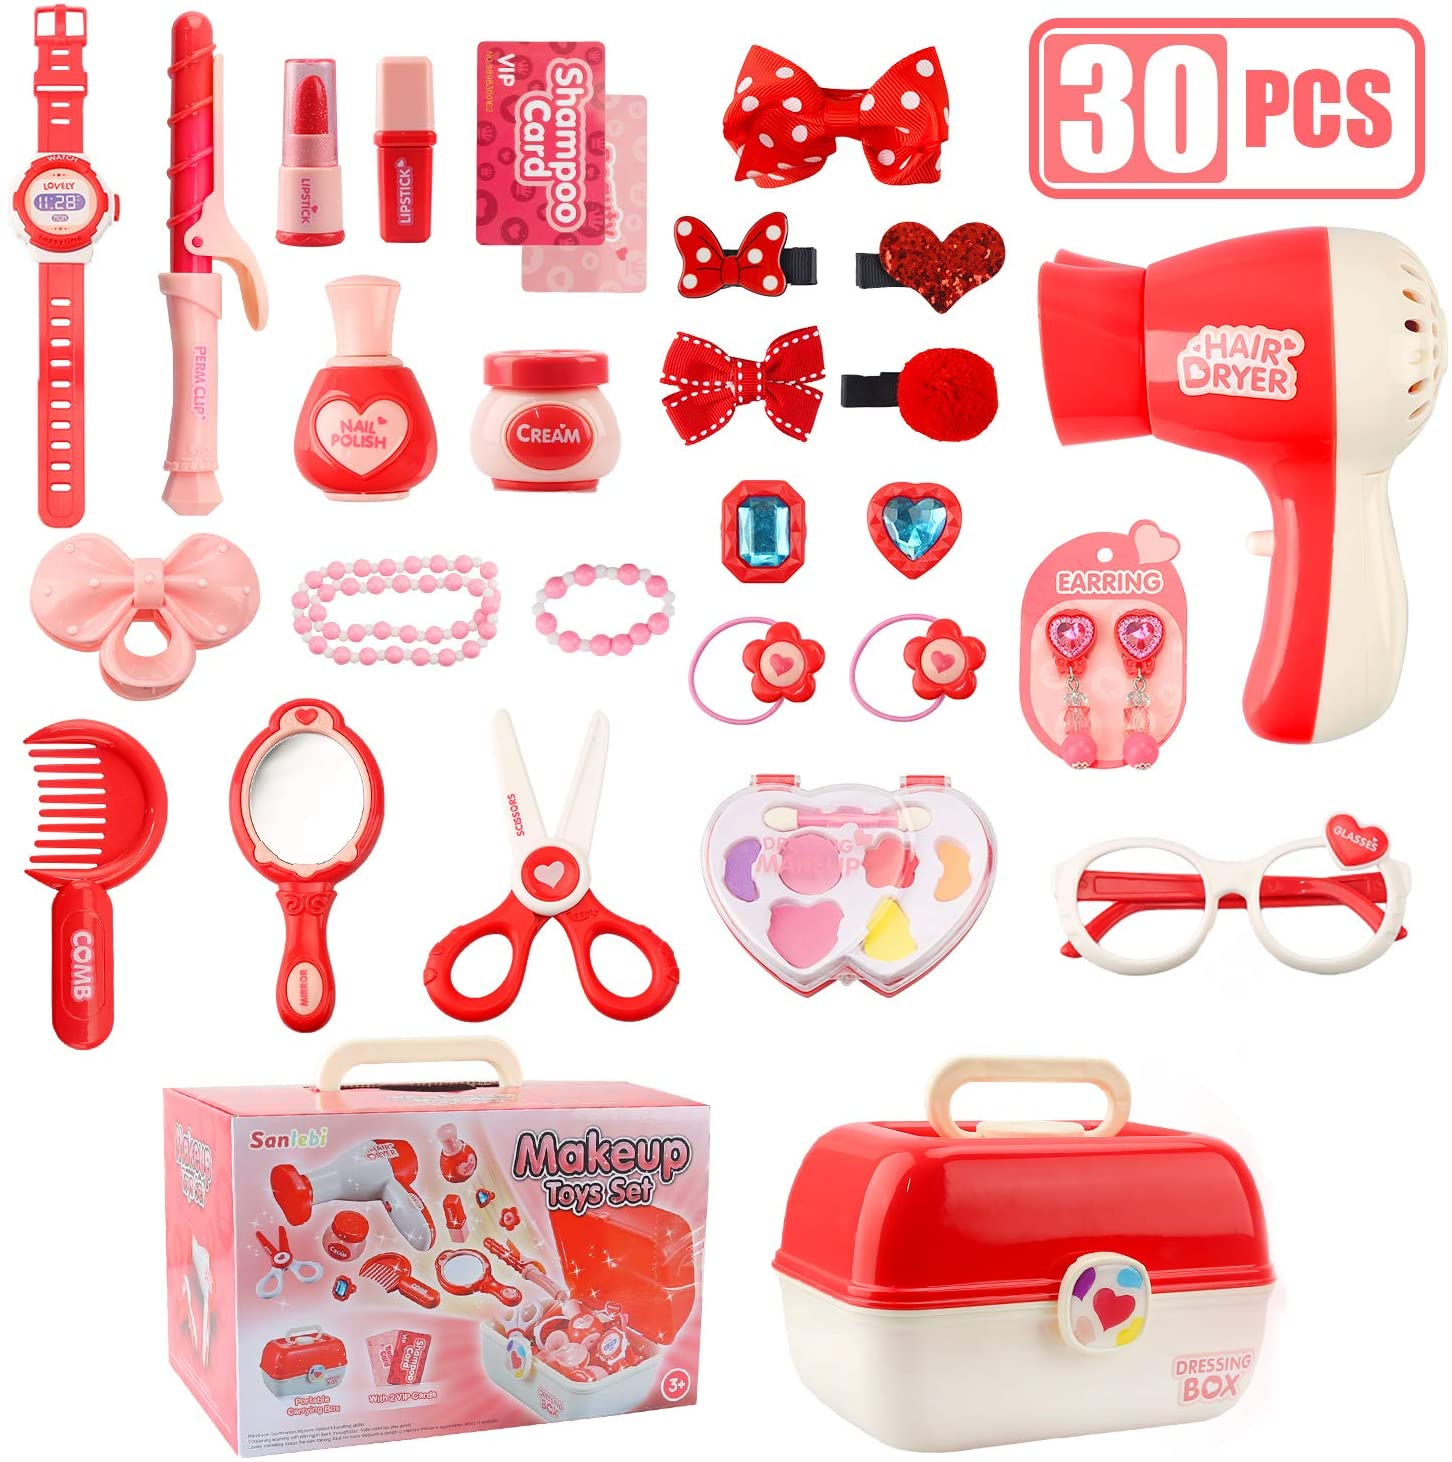 Sanlebi Pretend Makeup Set for Little Girls, Jewellery & Cosmetics Kit Princess Hair Dress Up Kit Hairdressing Play Set Educational Toys Gifts for 3 Year Olds Girls(30PCS)